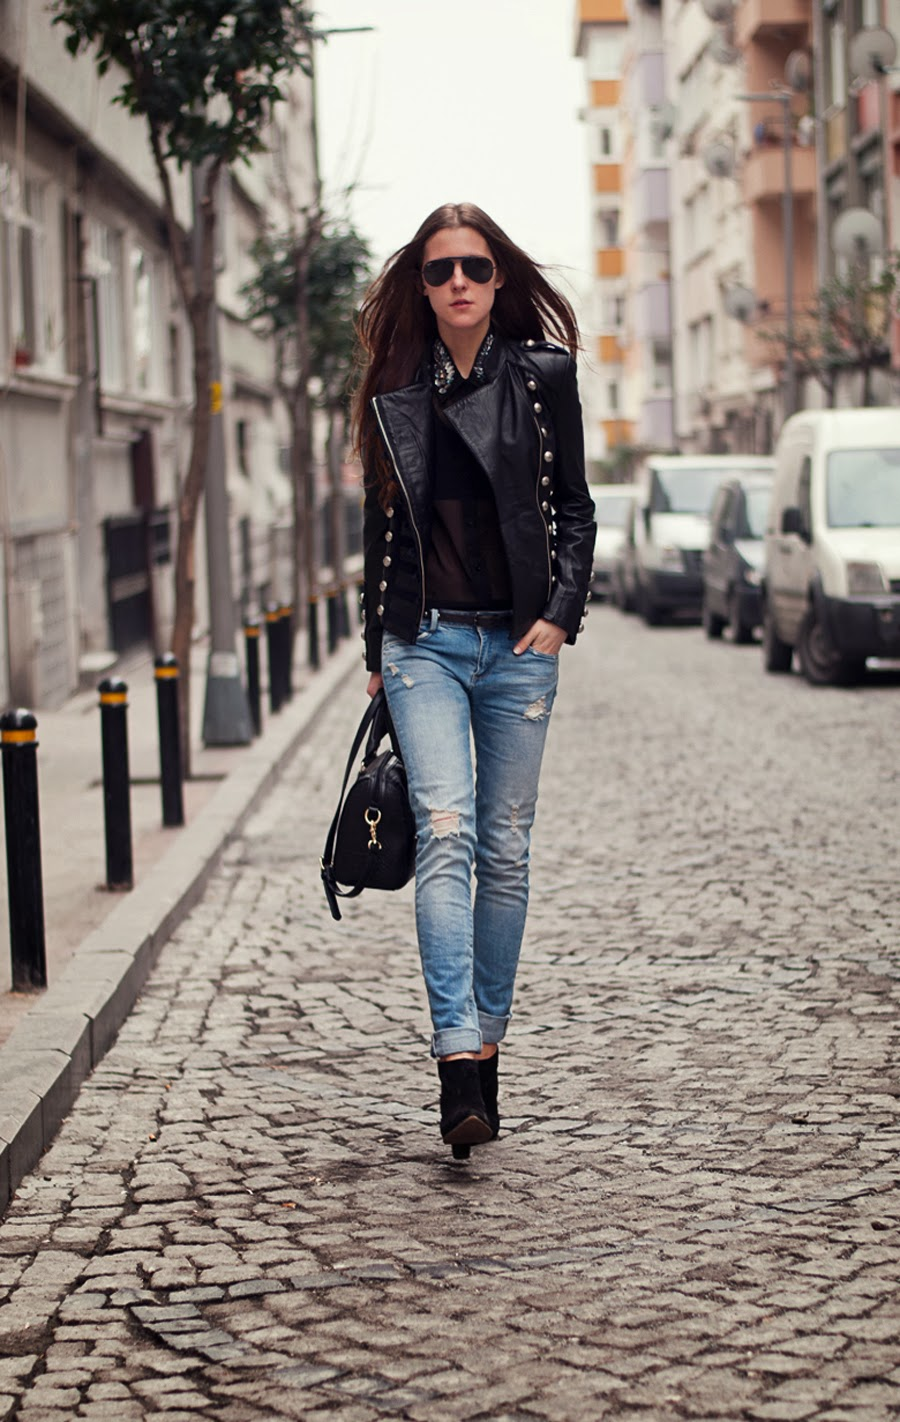 stretstyle spring 2014, leather jacket outfit, boda skins leather jacket, russian fashion blogger, istanbul streetstyle, zara  denim, boyfriend jeans outfit, ray ban aviators black, long hair , military style outfit,